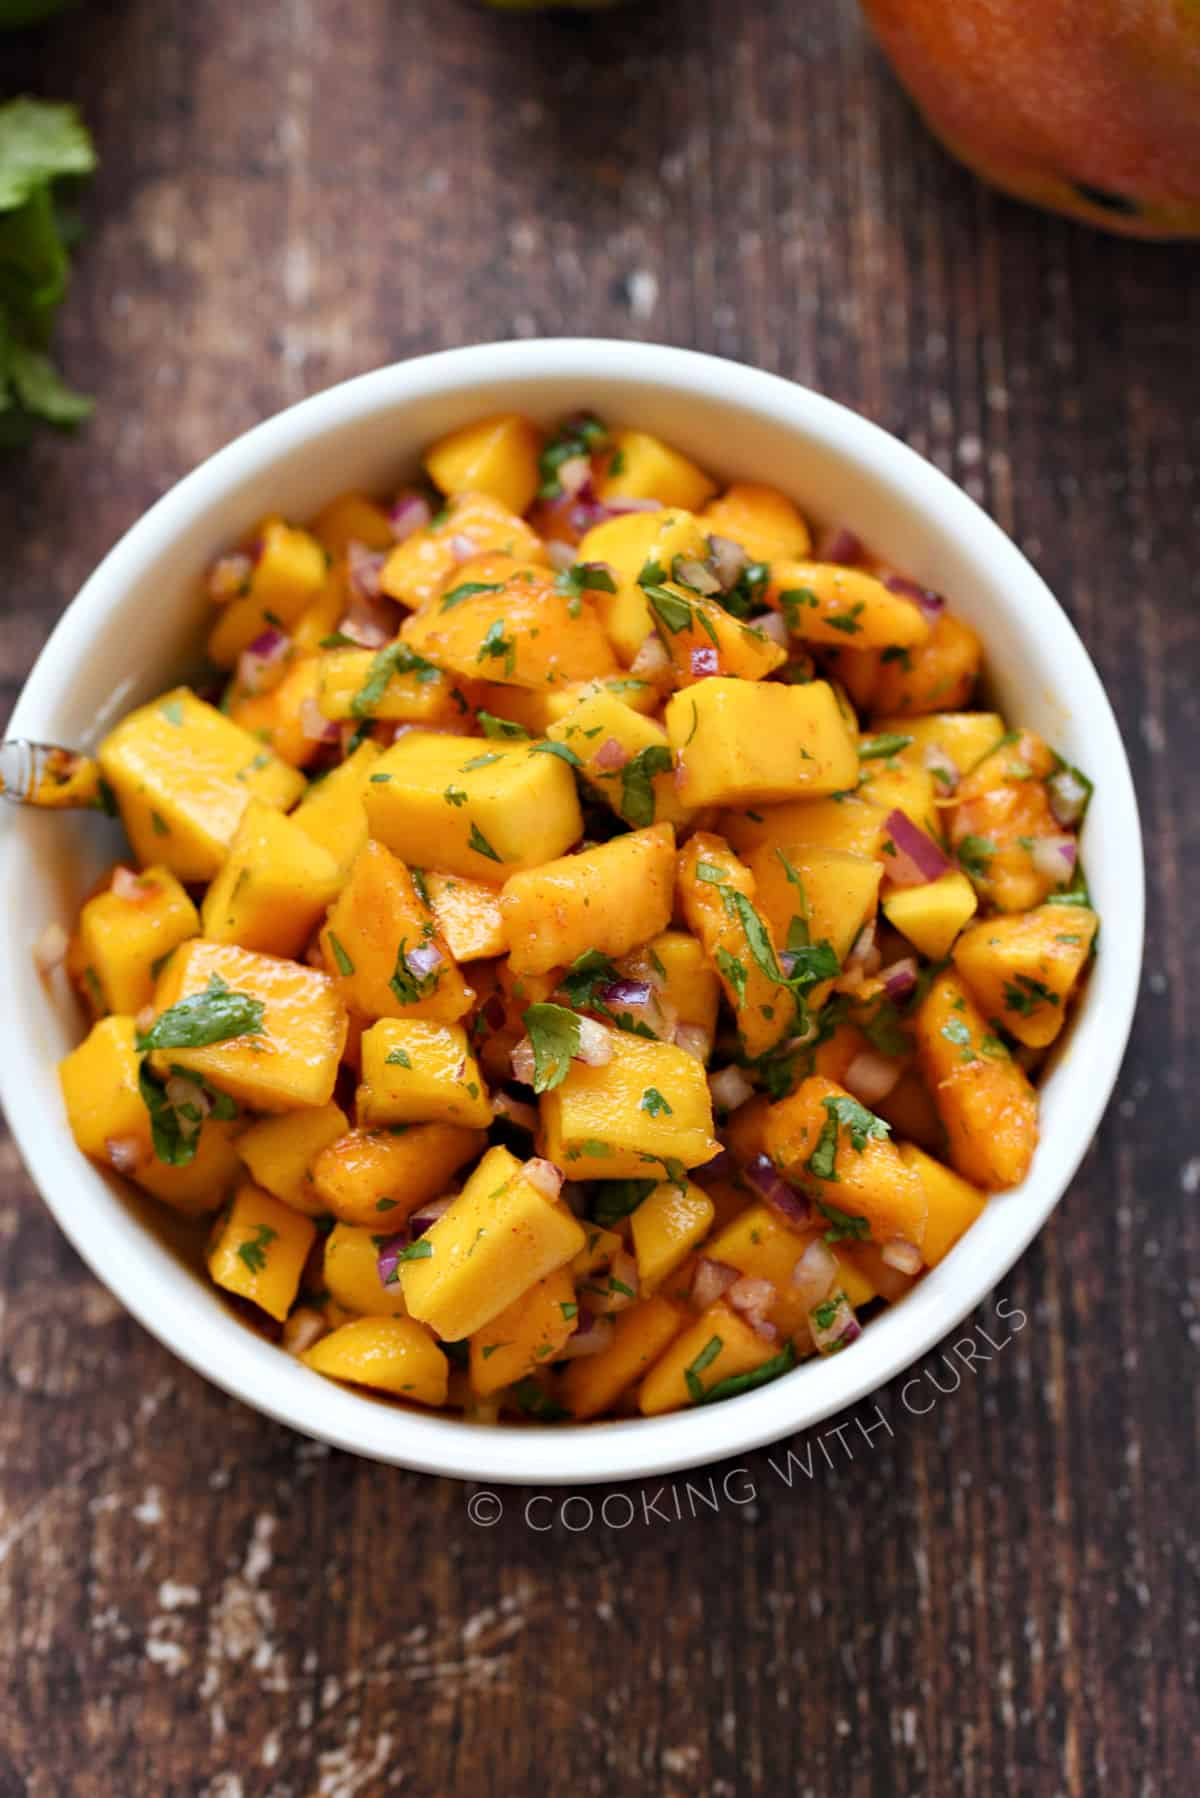 A small white bowl filled with chopped papaya, mango, red onion, cilantro, chipotle chili powder, and lime juice.